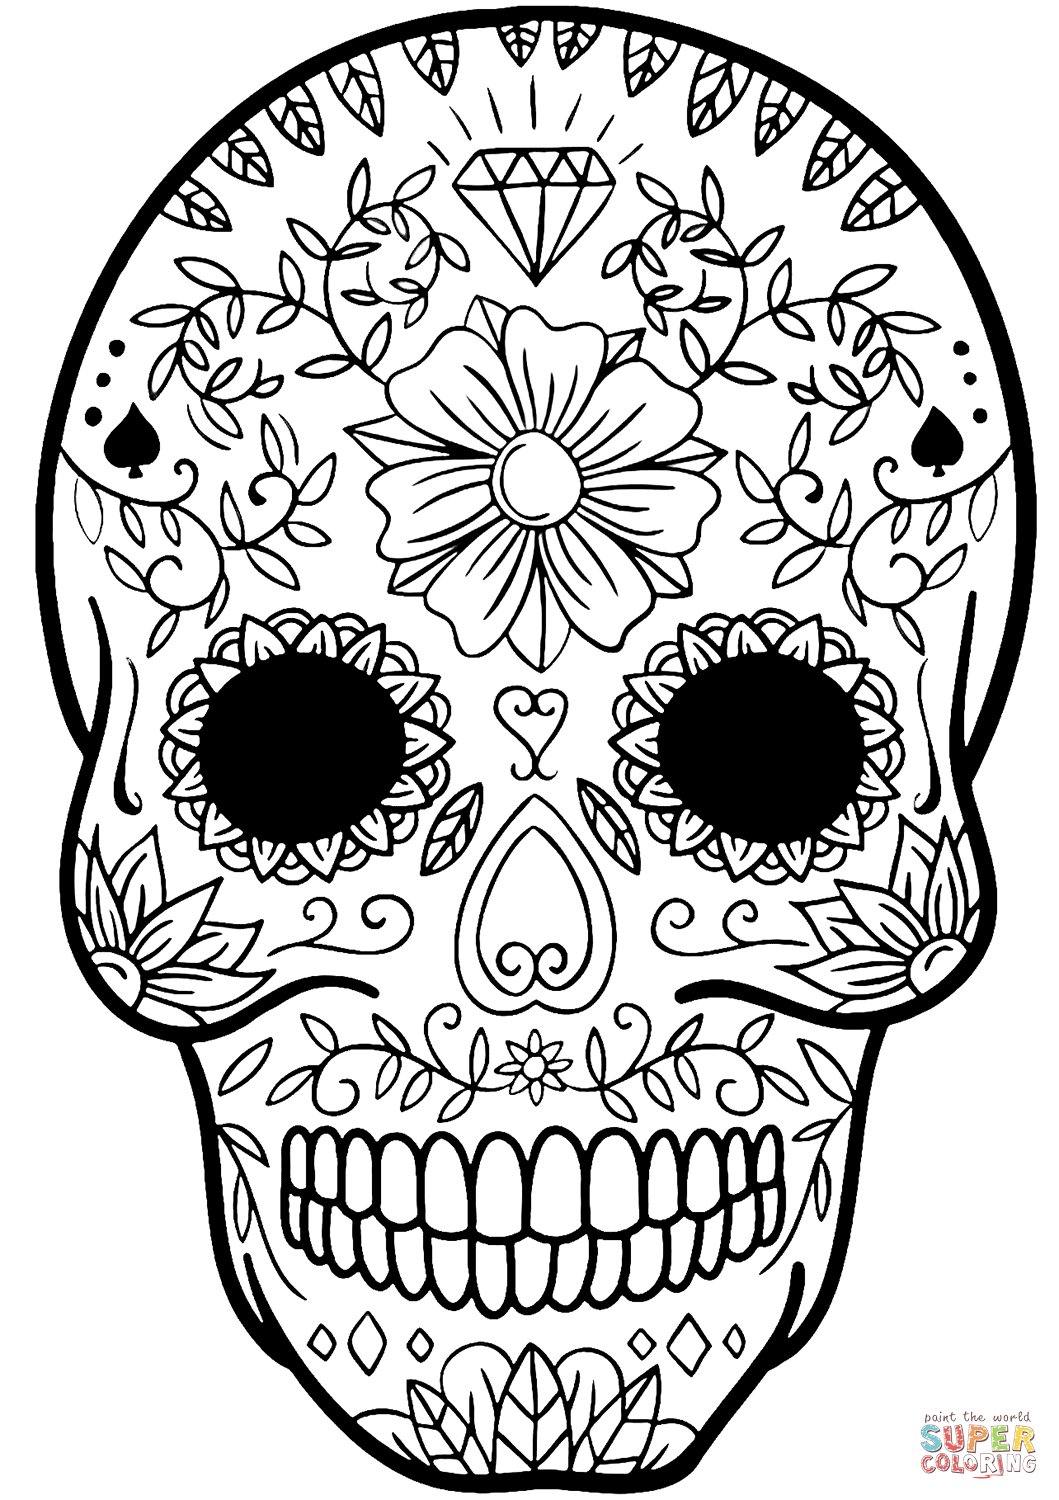 Skull Color Pages Coloring Ideas Sugar Skull Coloring Page Bones Of The Pages Ideas